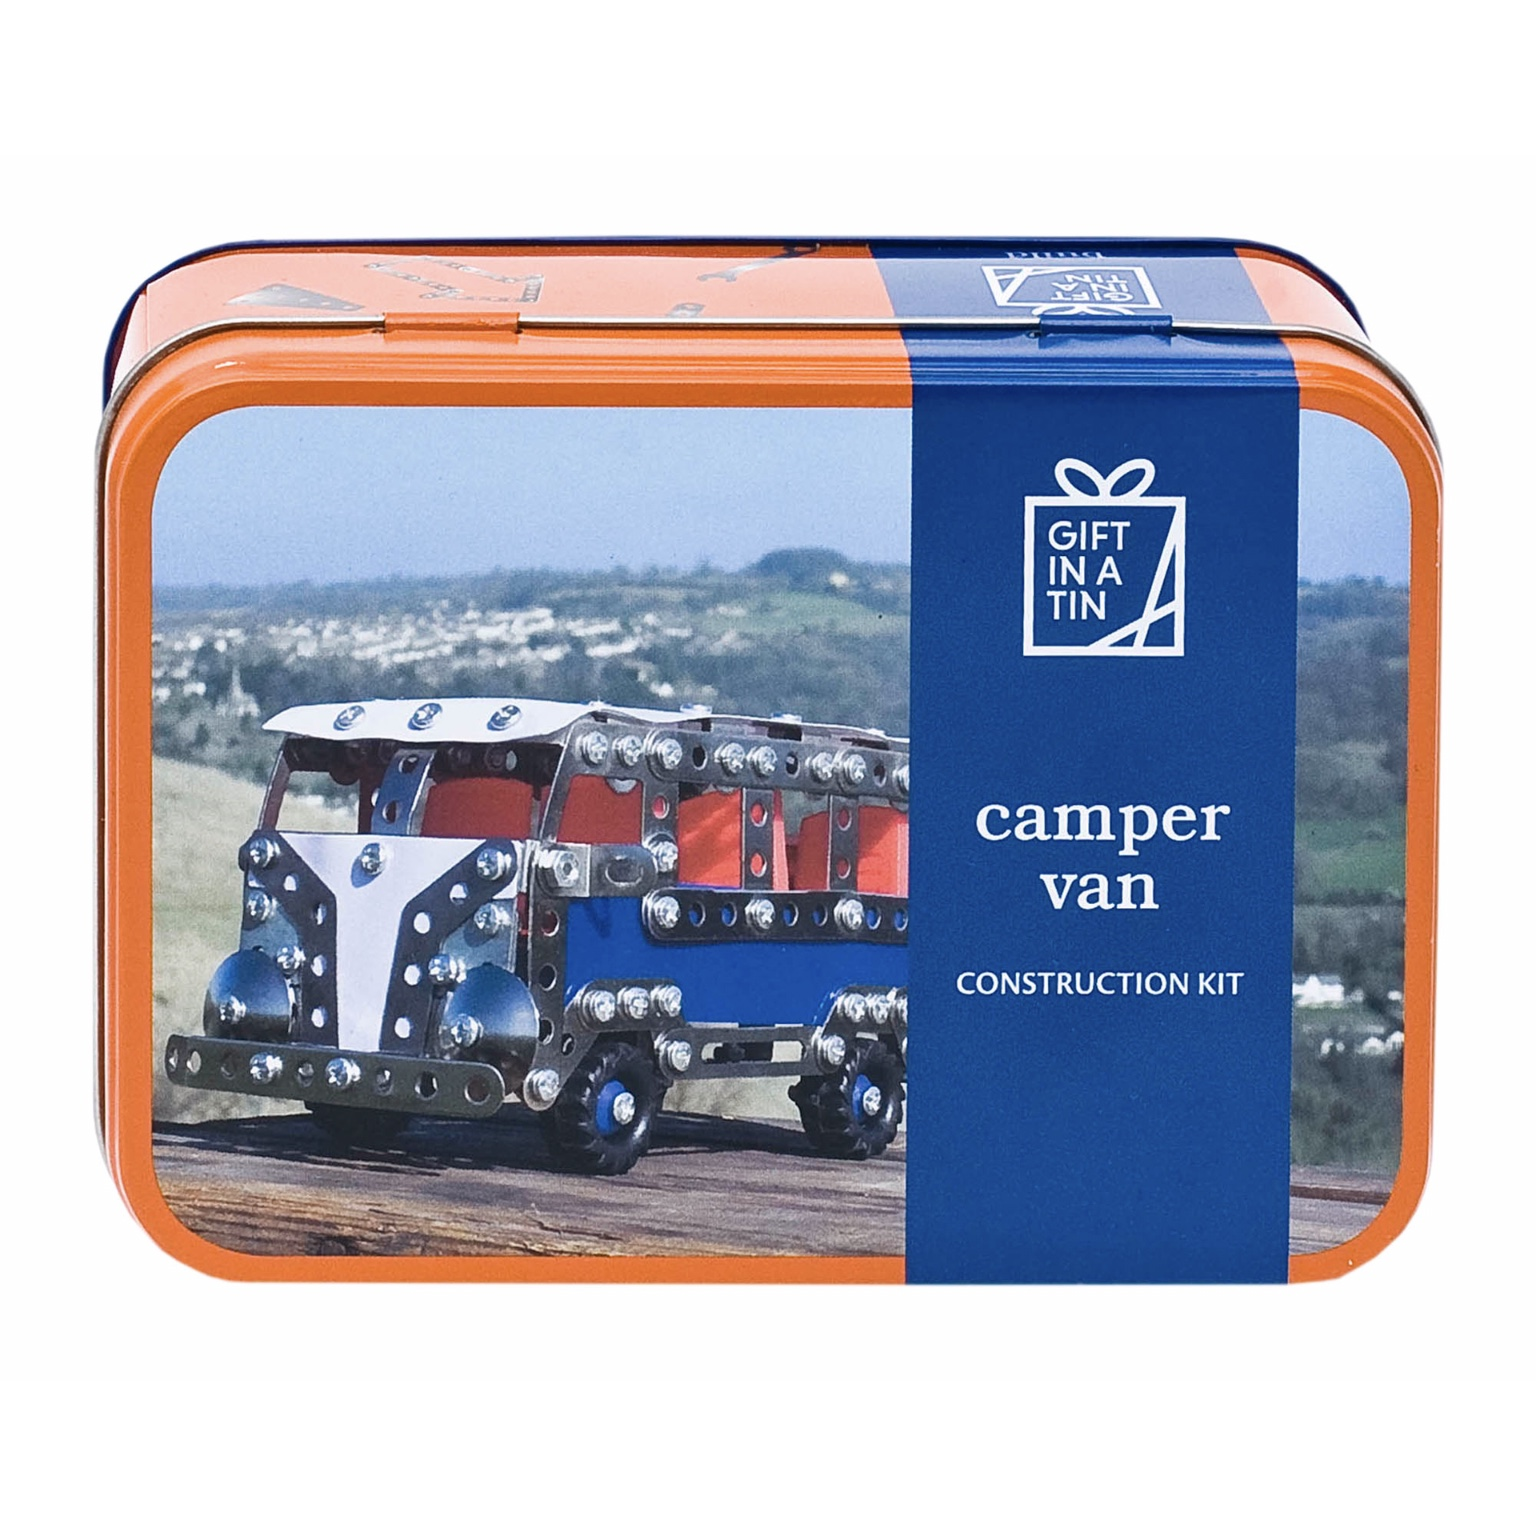 'Camper Van Construction Kit' Gift in a Tin